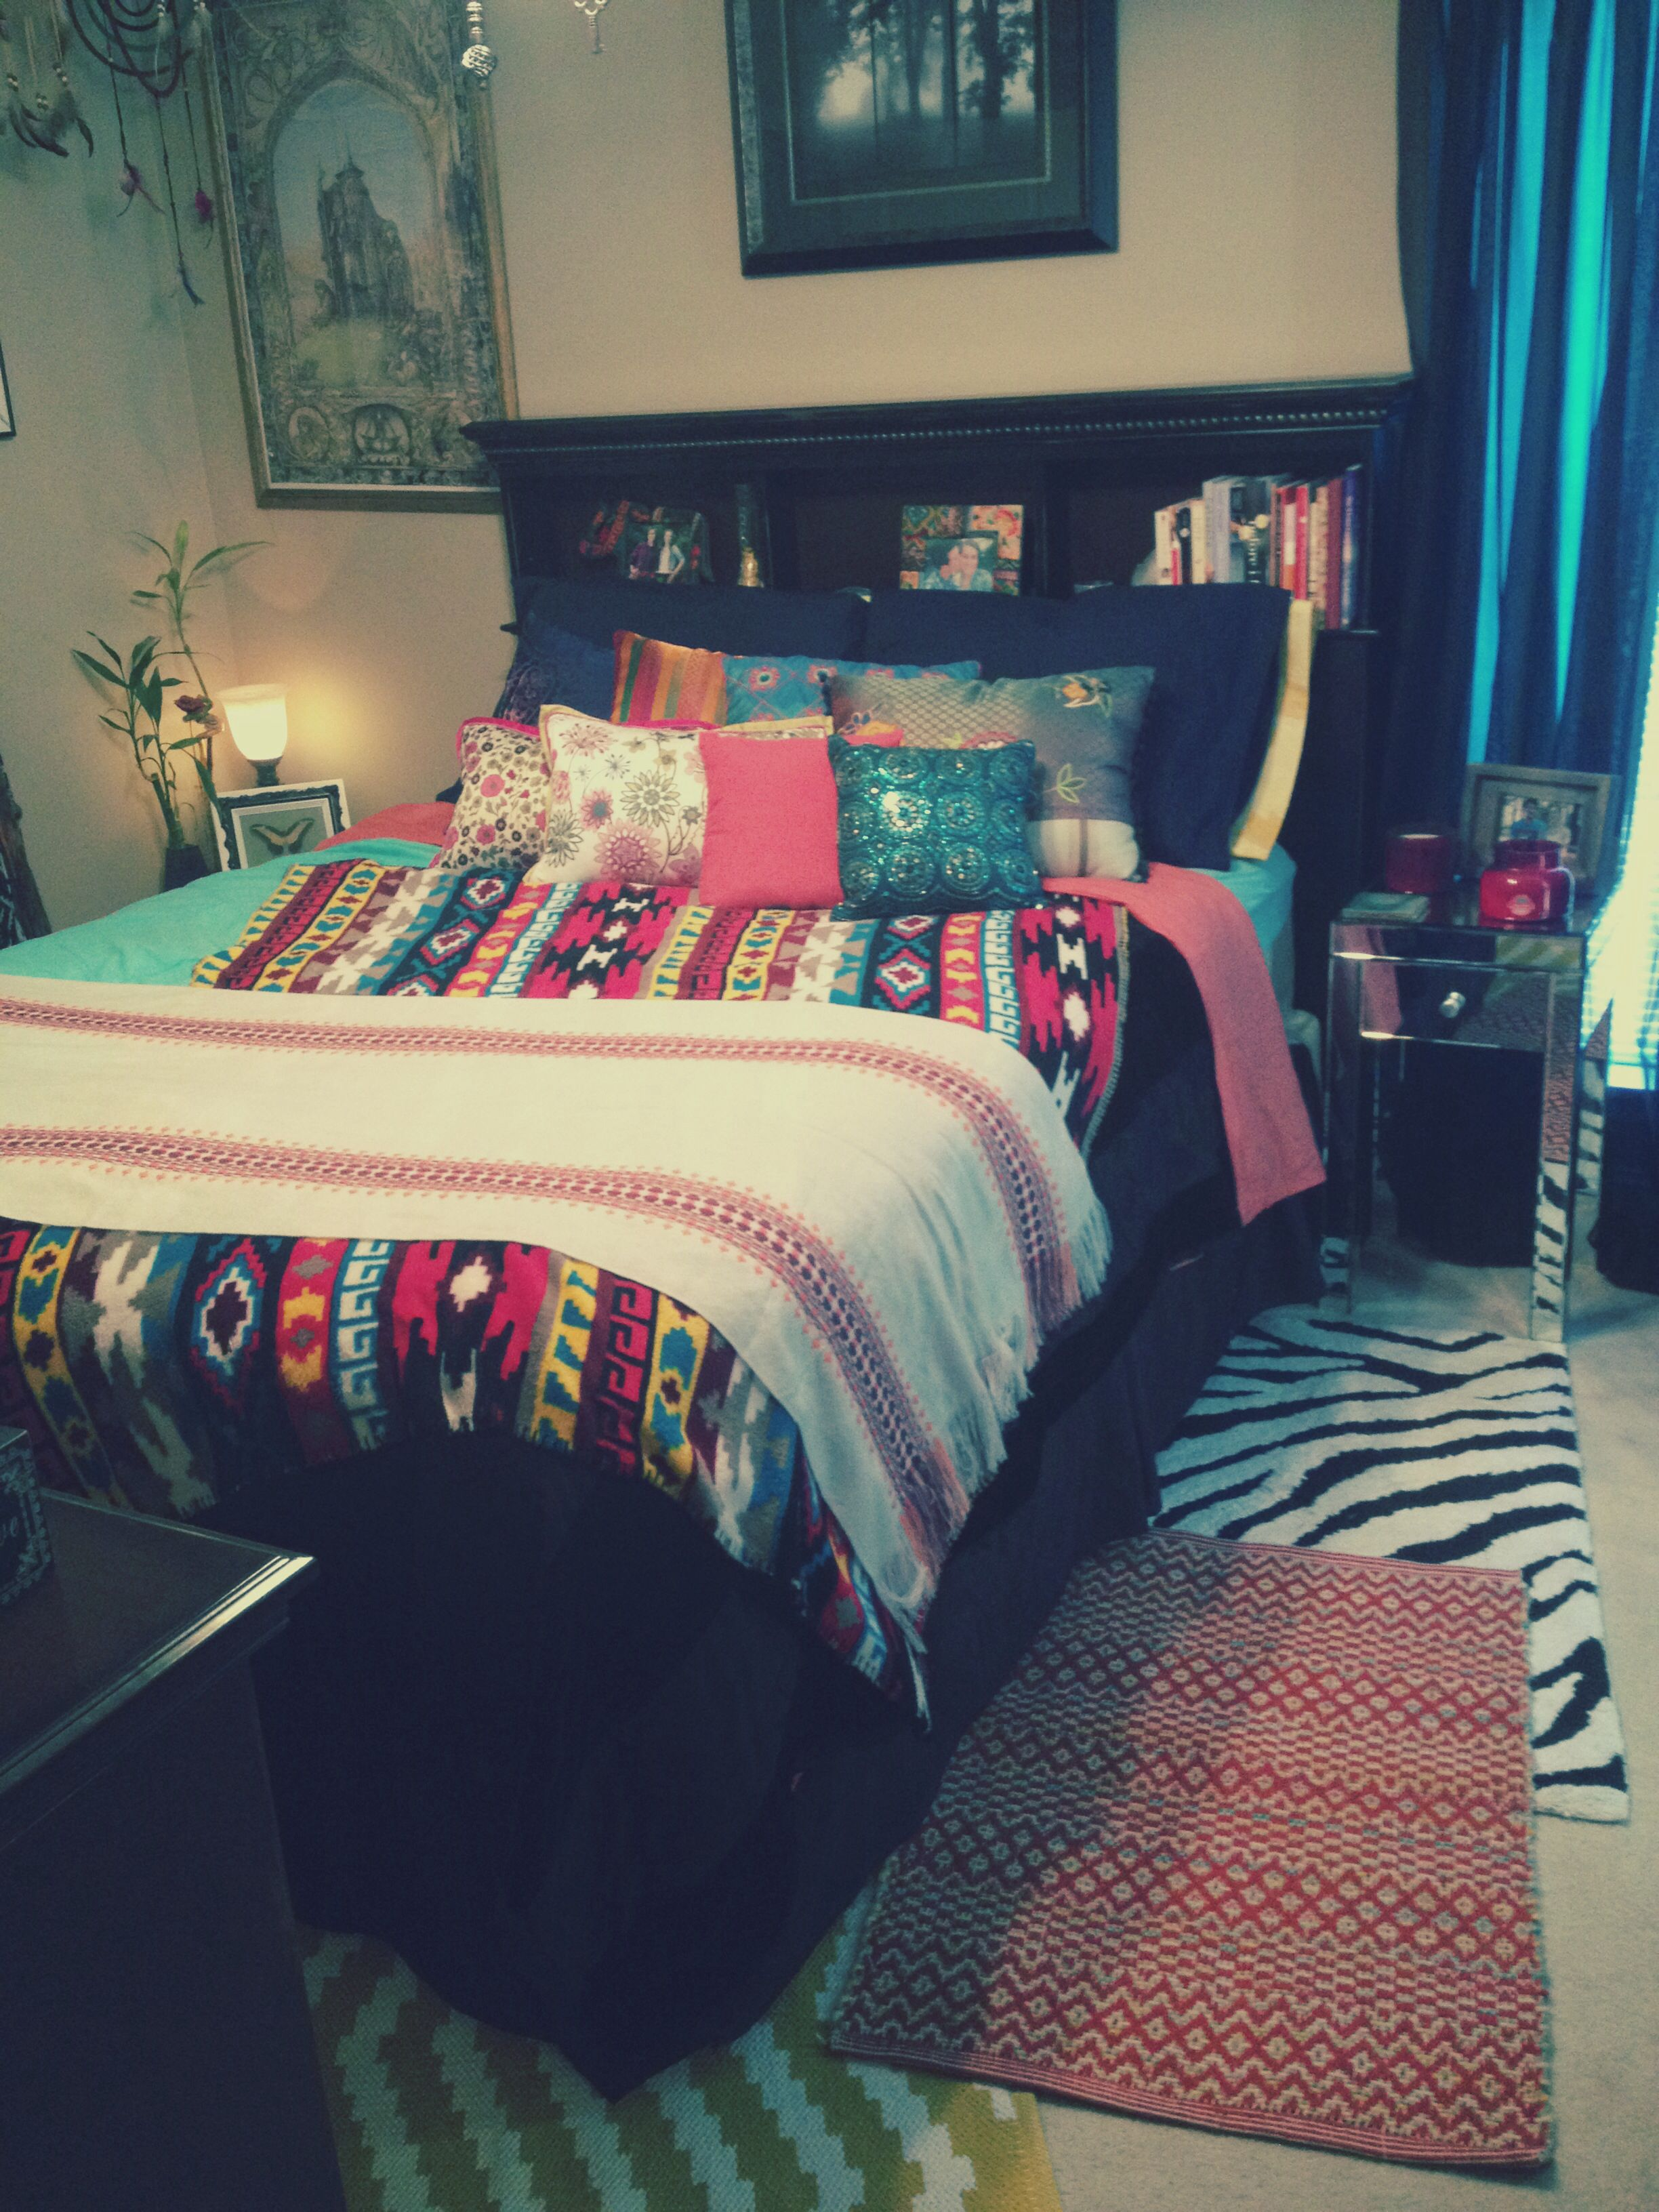 My Boho Bedroom! | Apartment style, Apartment chic, Home ...